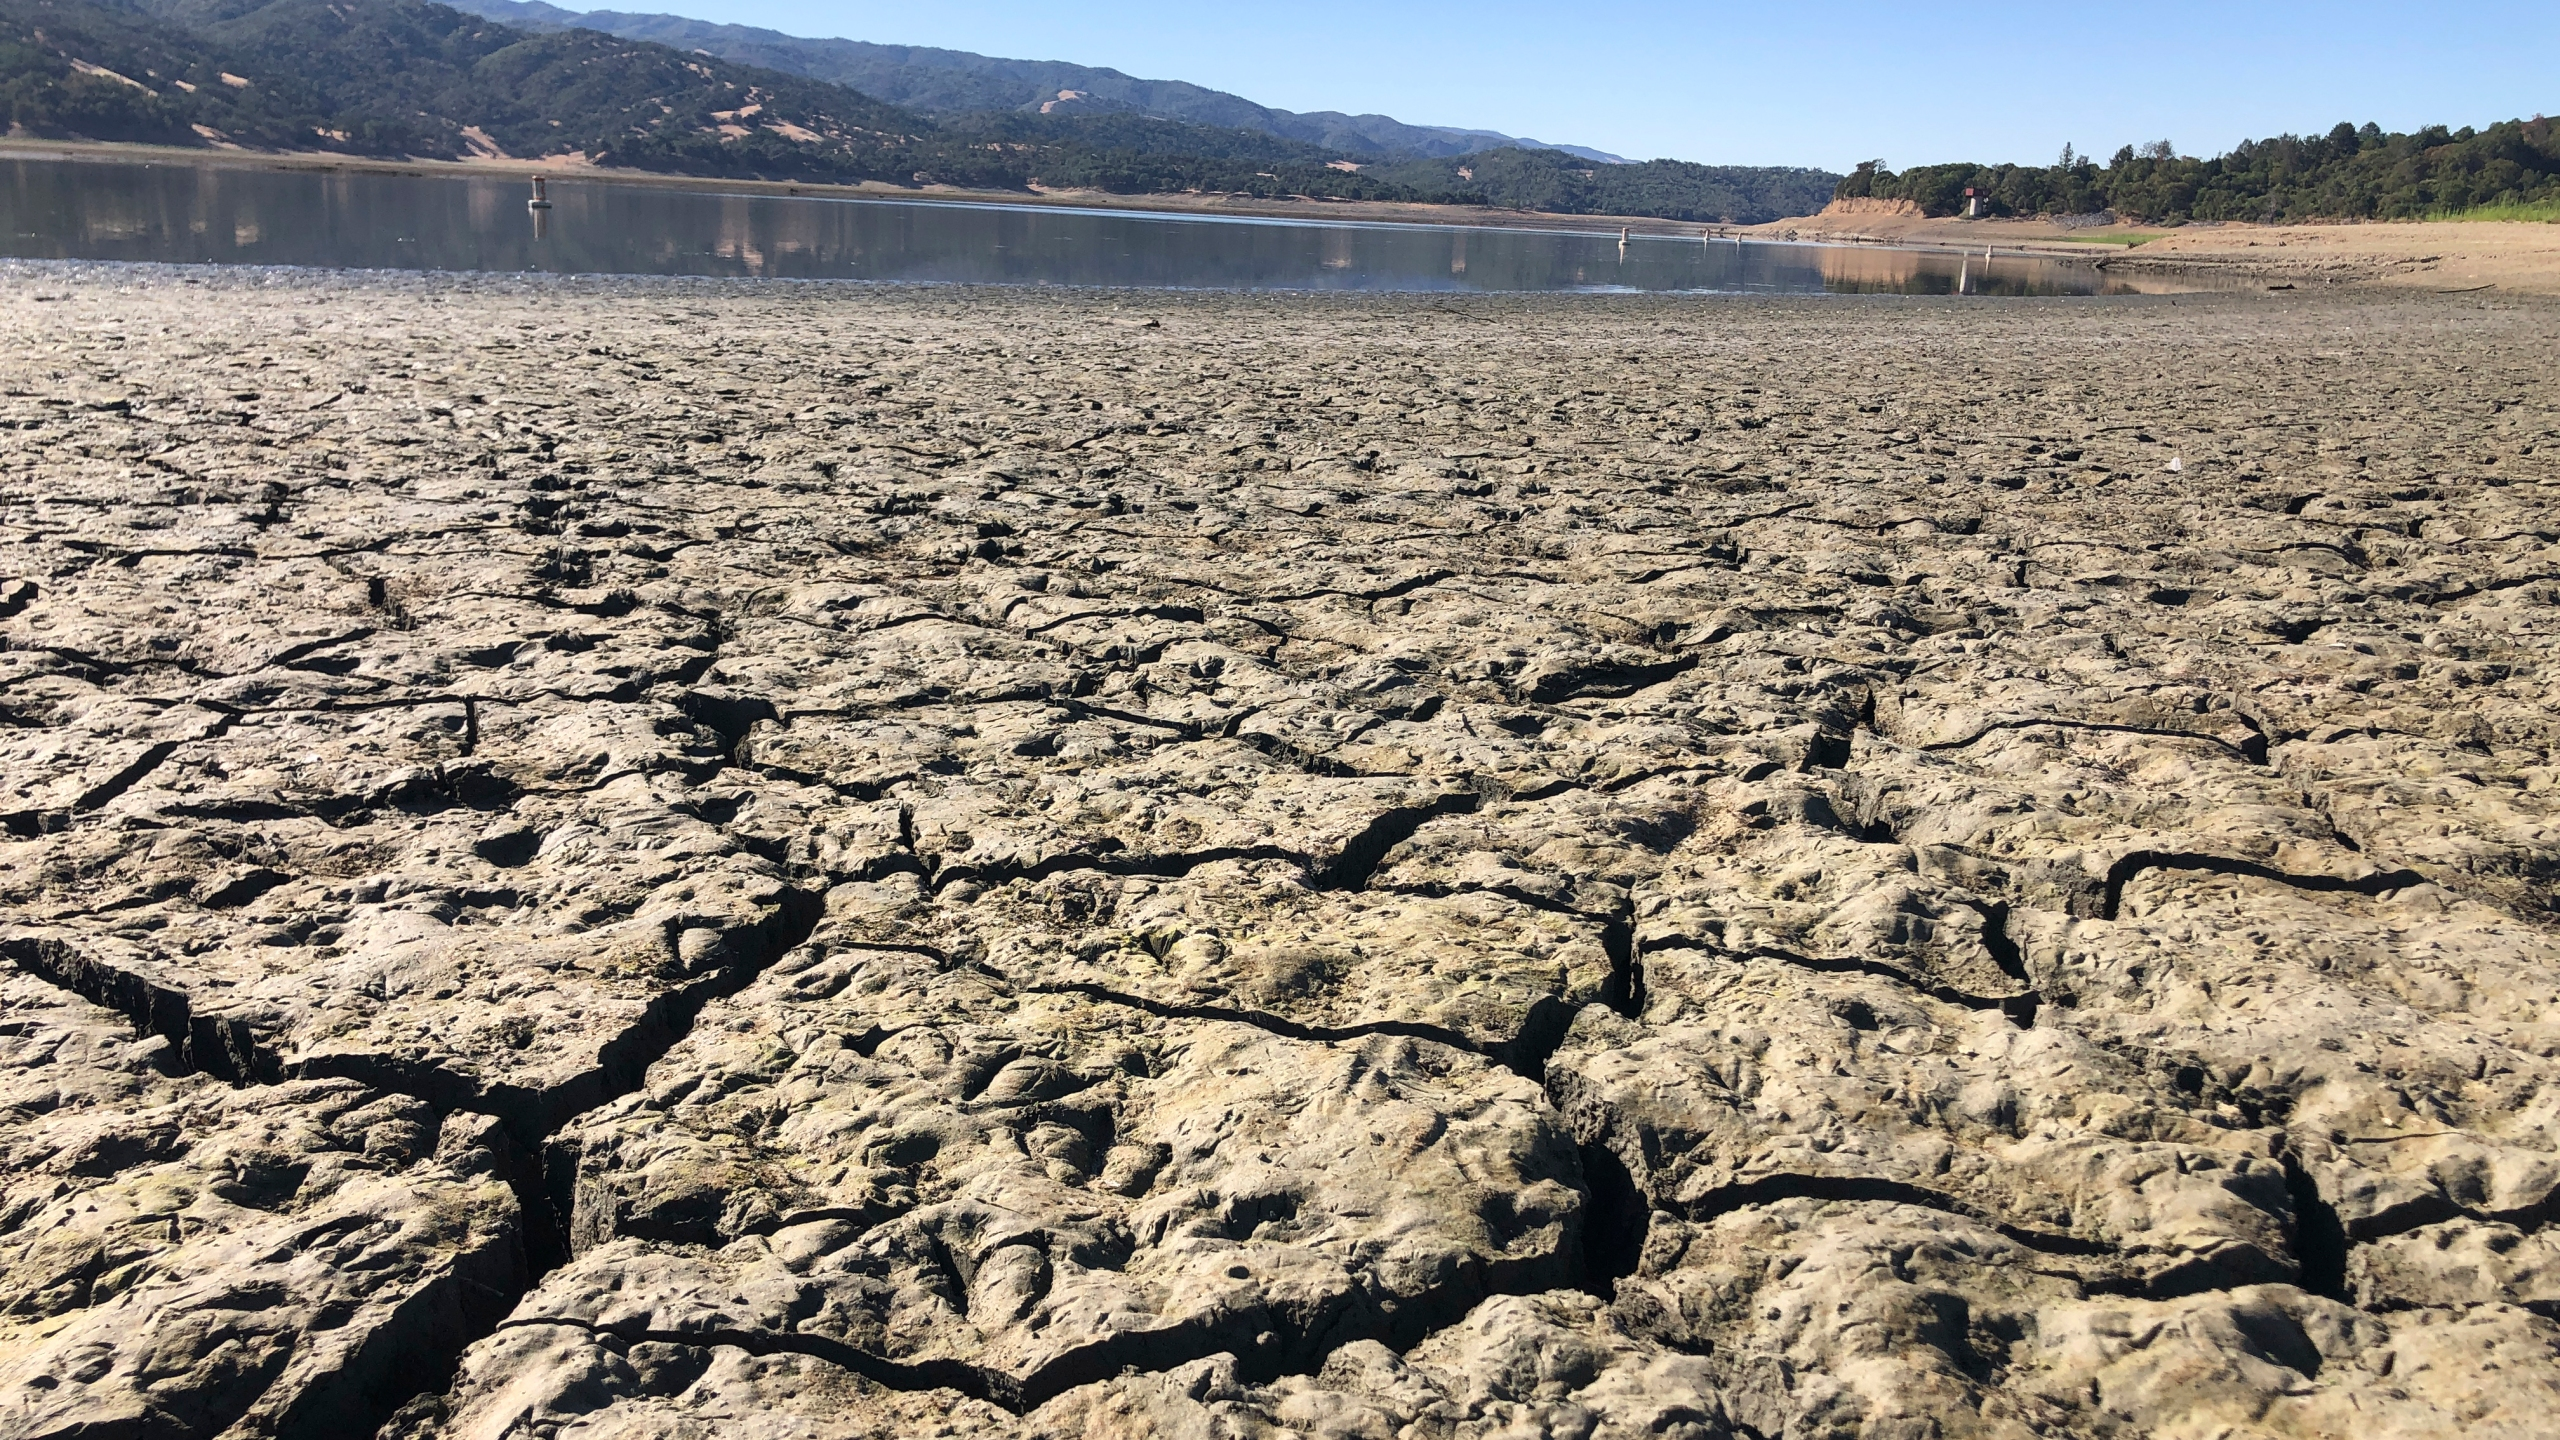 An exposed dry bed is seen at Lake Mendocino near Ukiah, Calif. on Aug. 4, 2021. (AP Photo/Haven Daley)